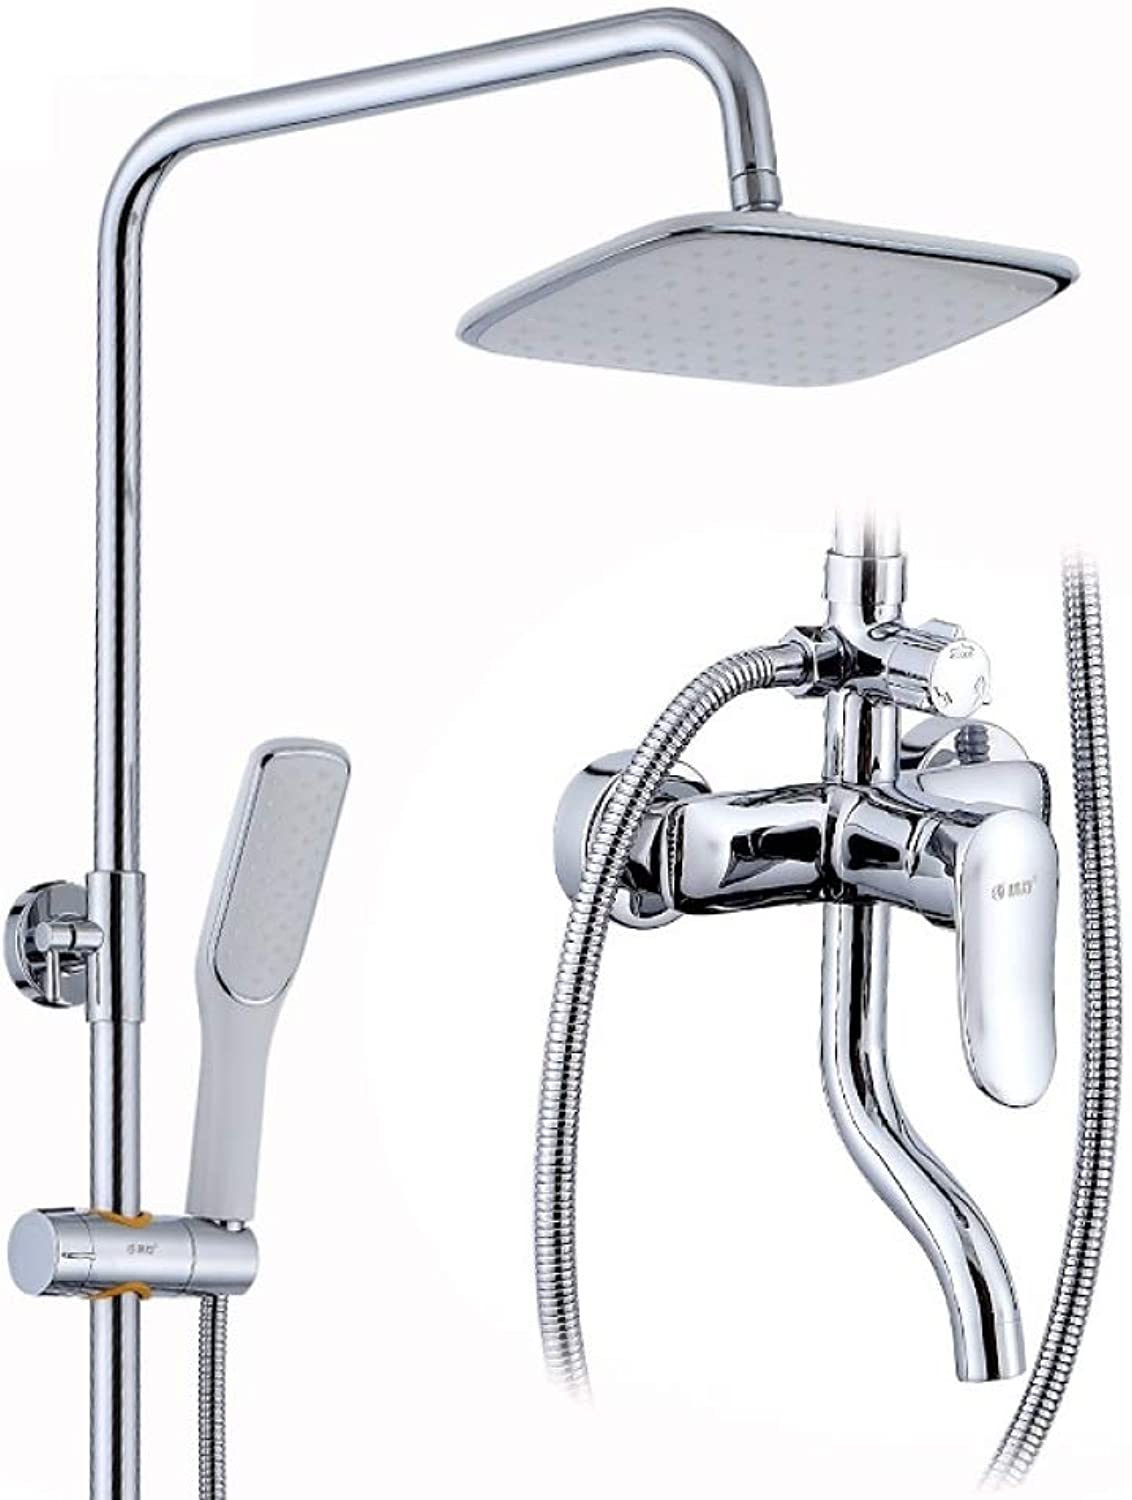 LyMei shower faucet set, shower system polished Copper-Adjustable Shower-Wall Mounted- Three outlet showers mean flexibility-Bathroom modern rain